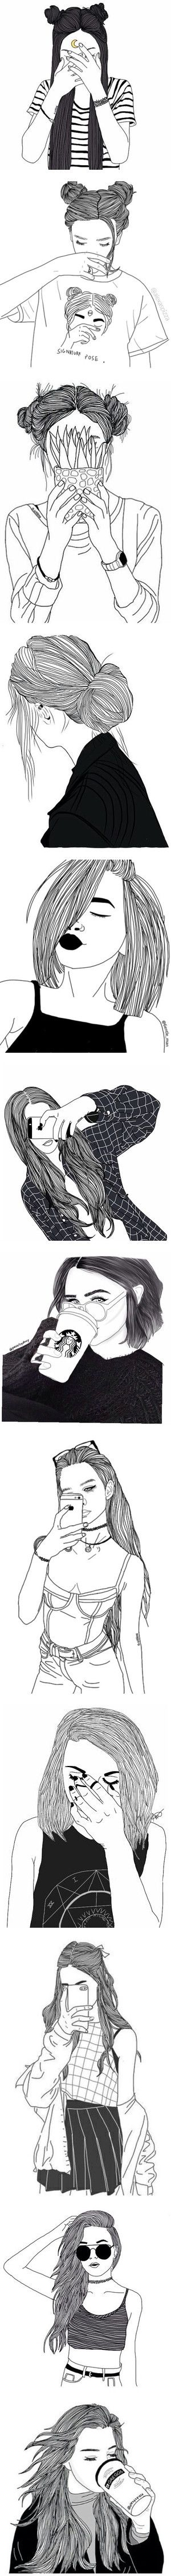 """""""black line drawings"""" by xxharrietxx ❤ liked on Polyvore"""